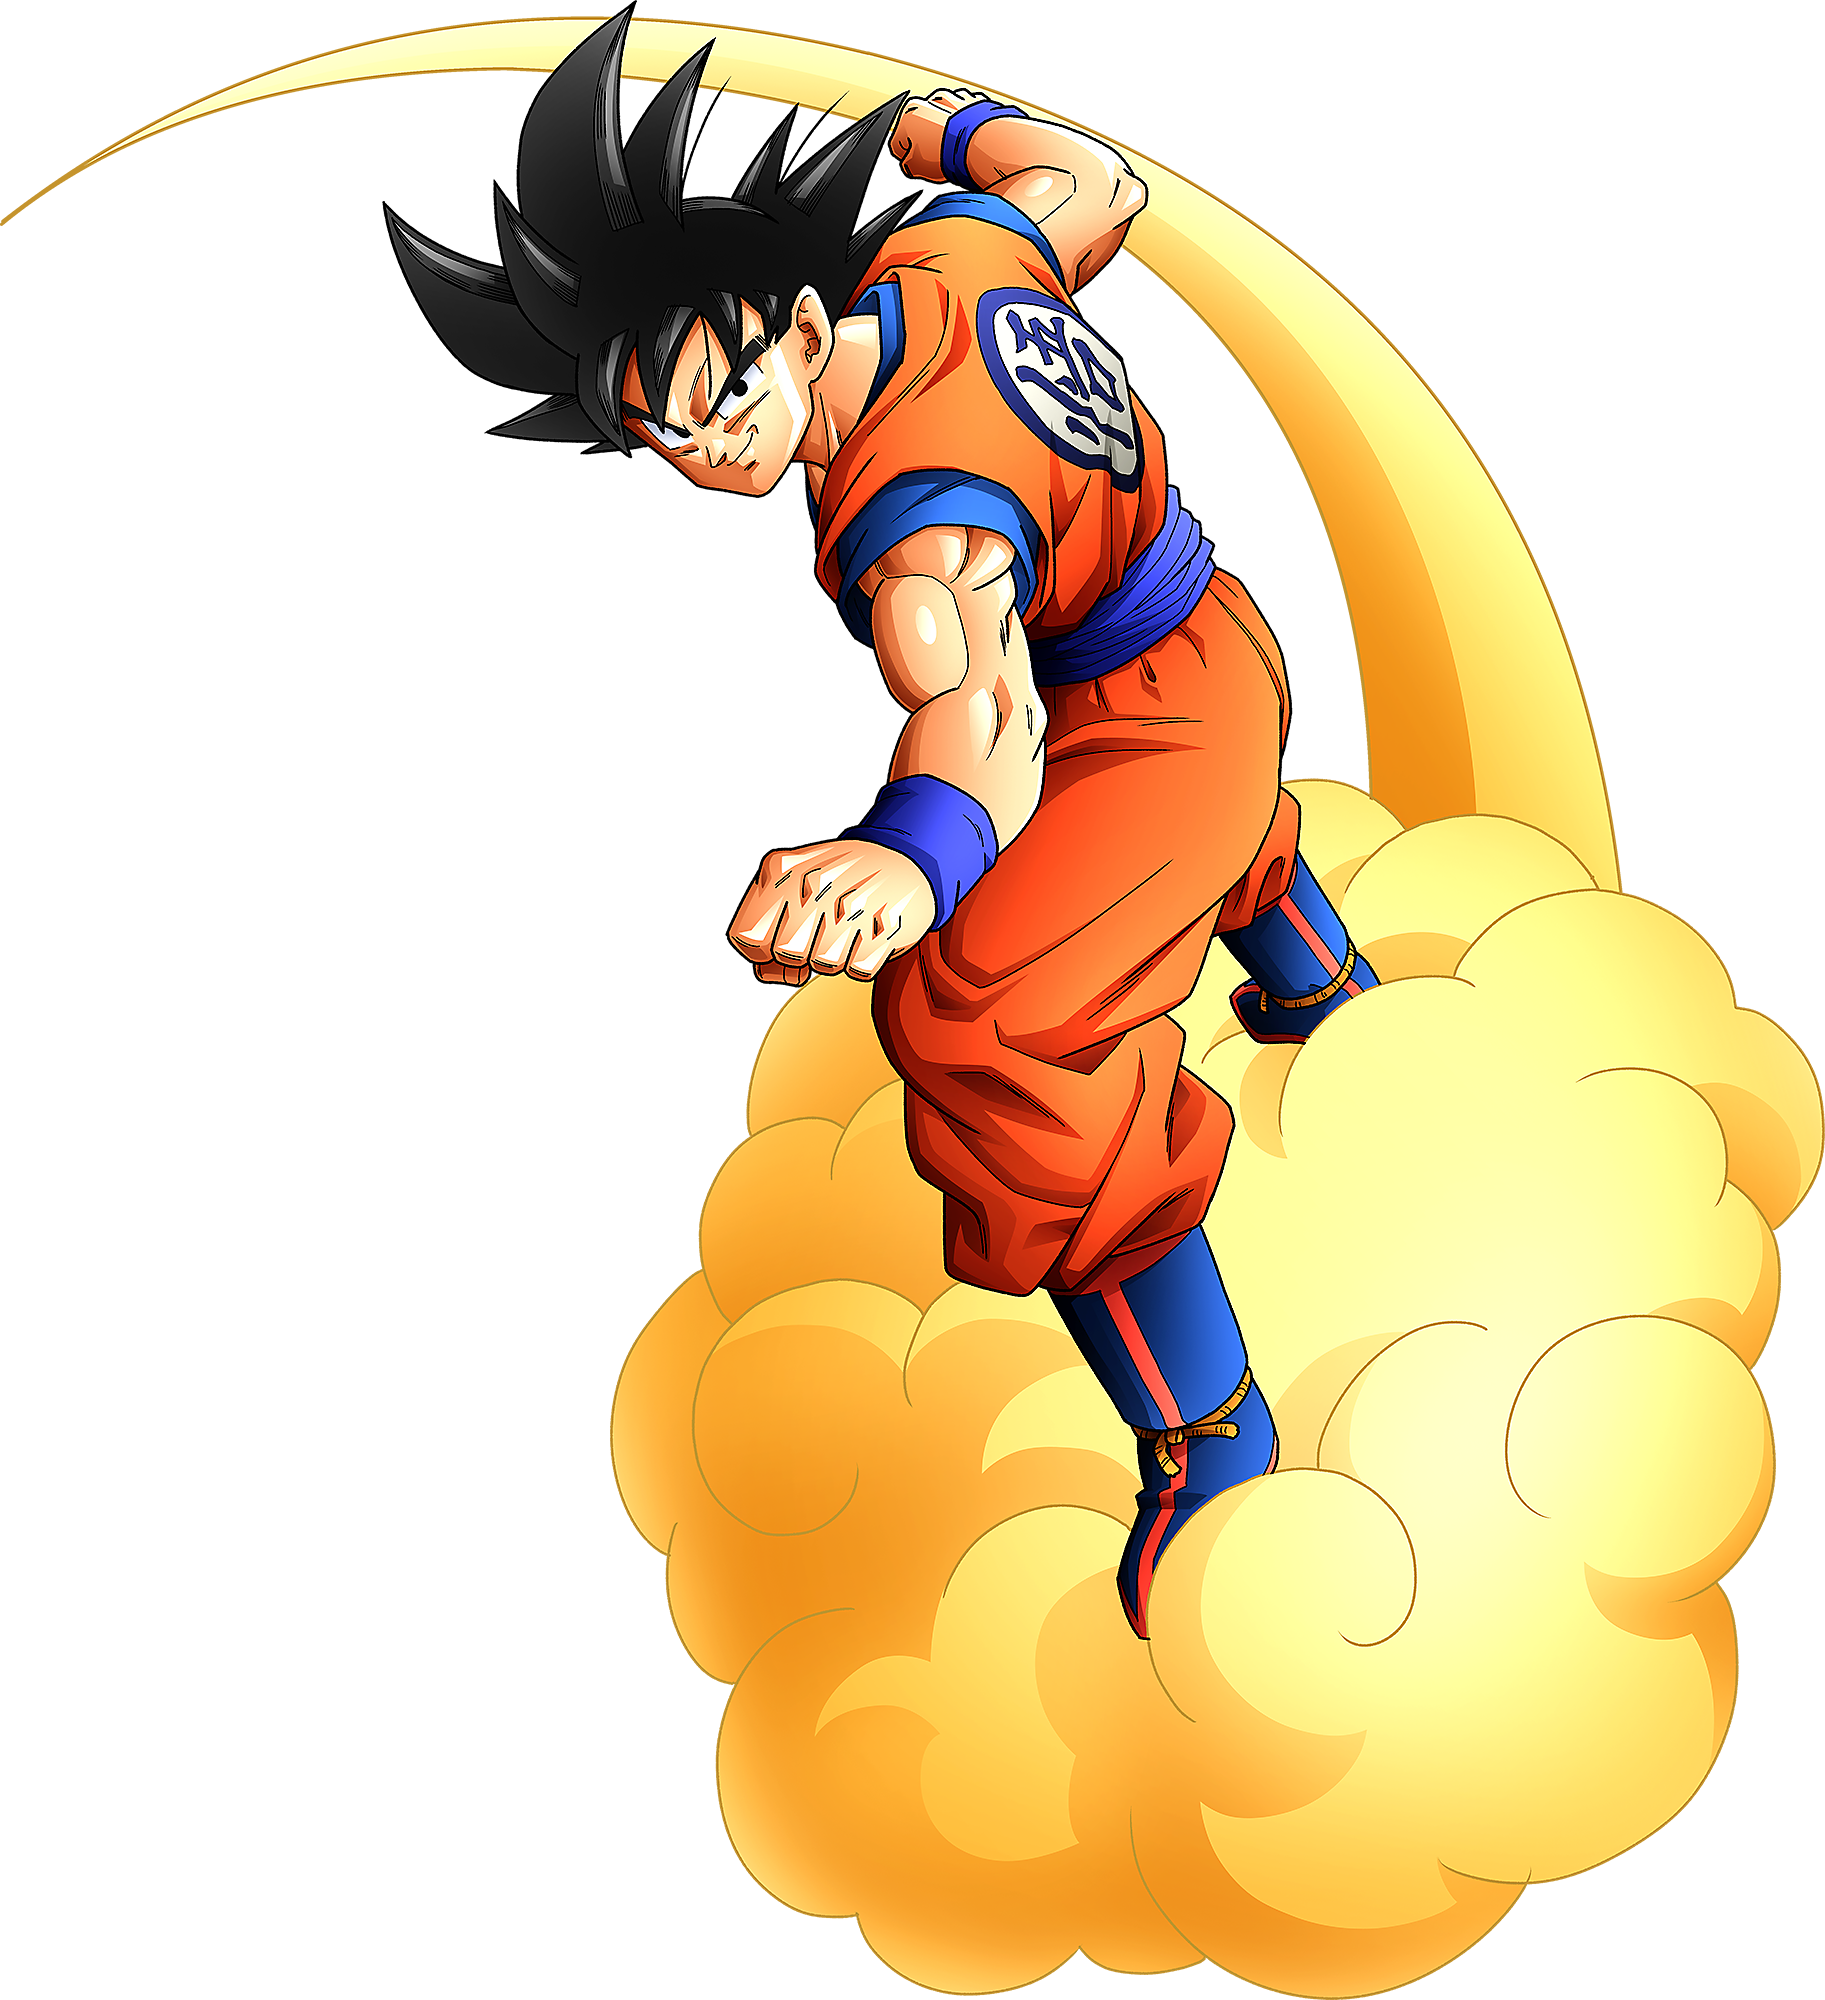 Dragon-Ball-Z-Kakarot-codes-free-activation